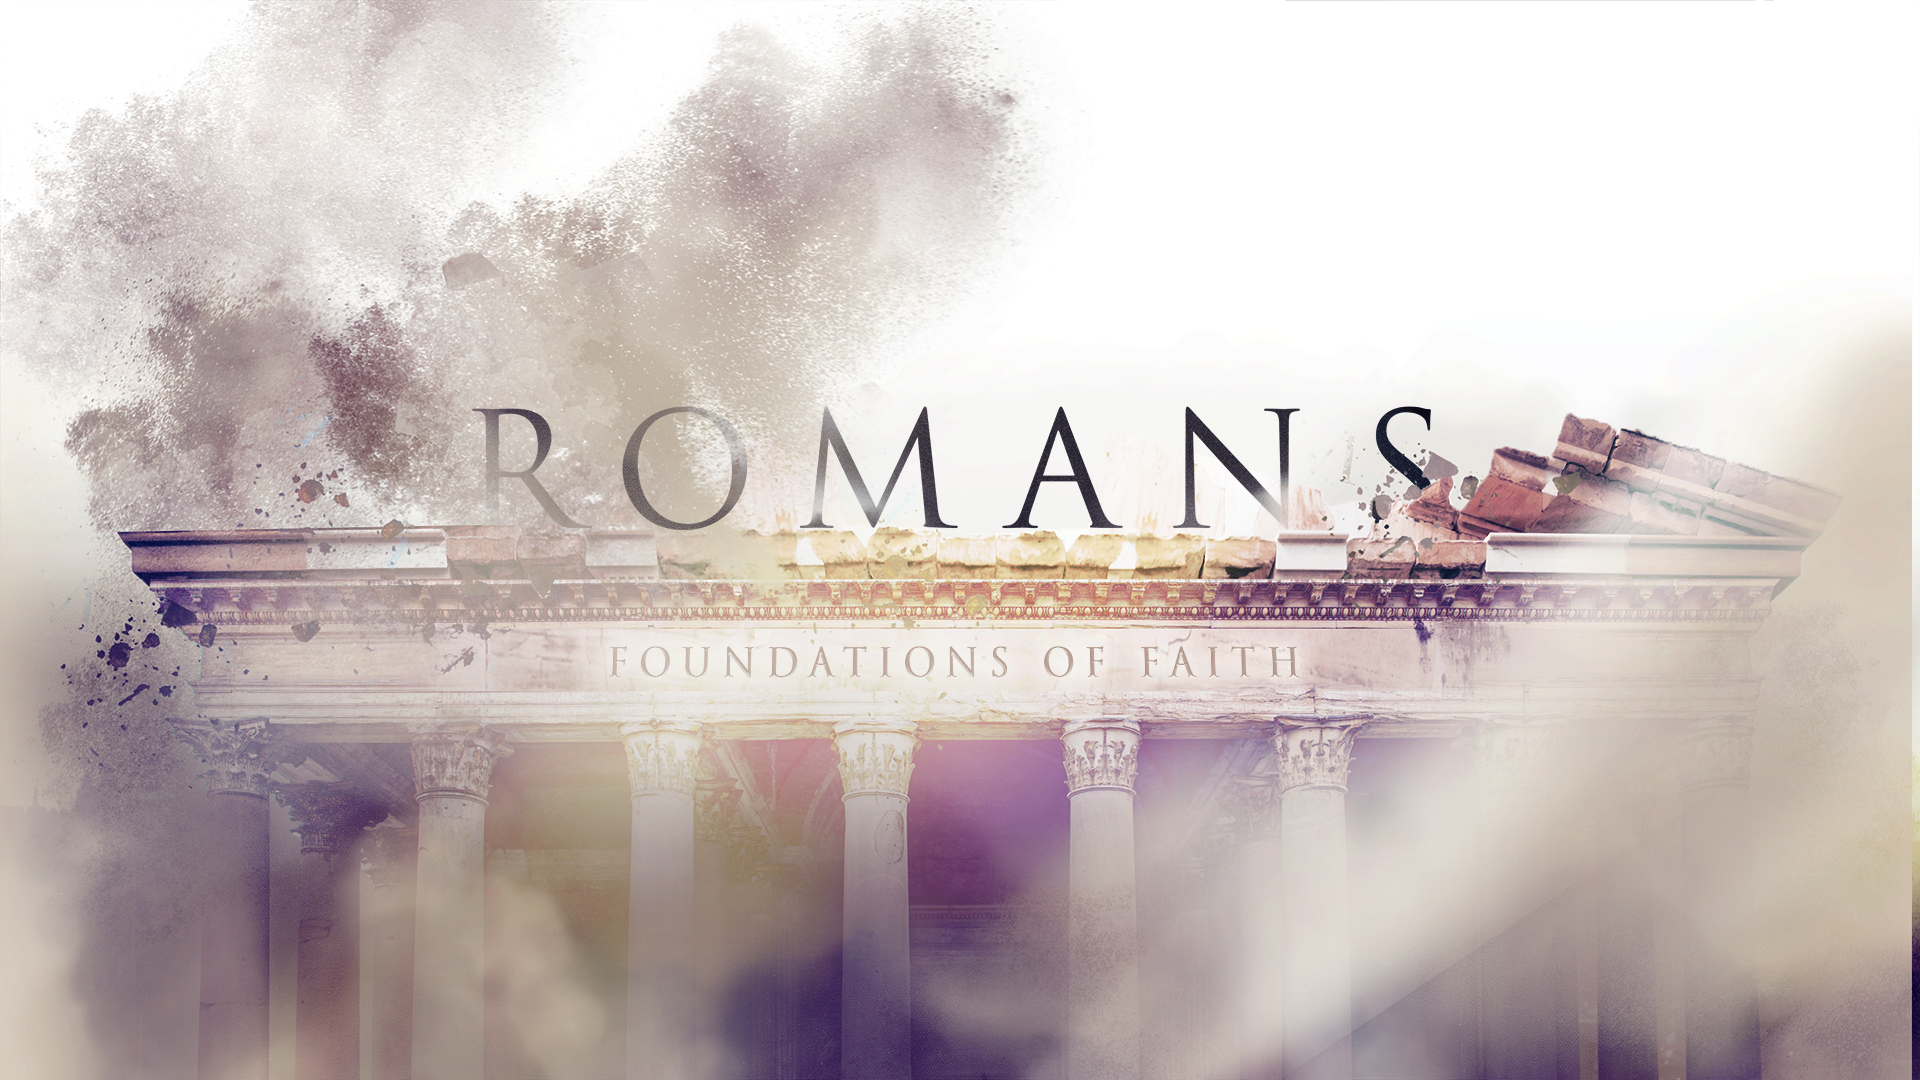 Sermon Series - Our Latest Series: Foundations of Faith